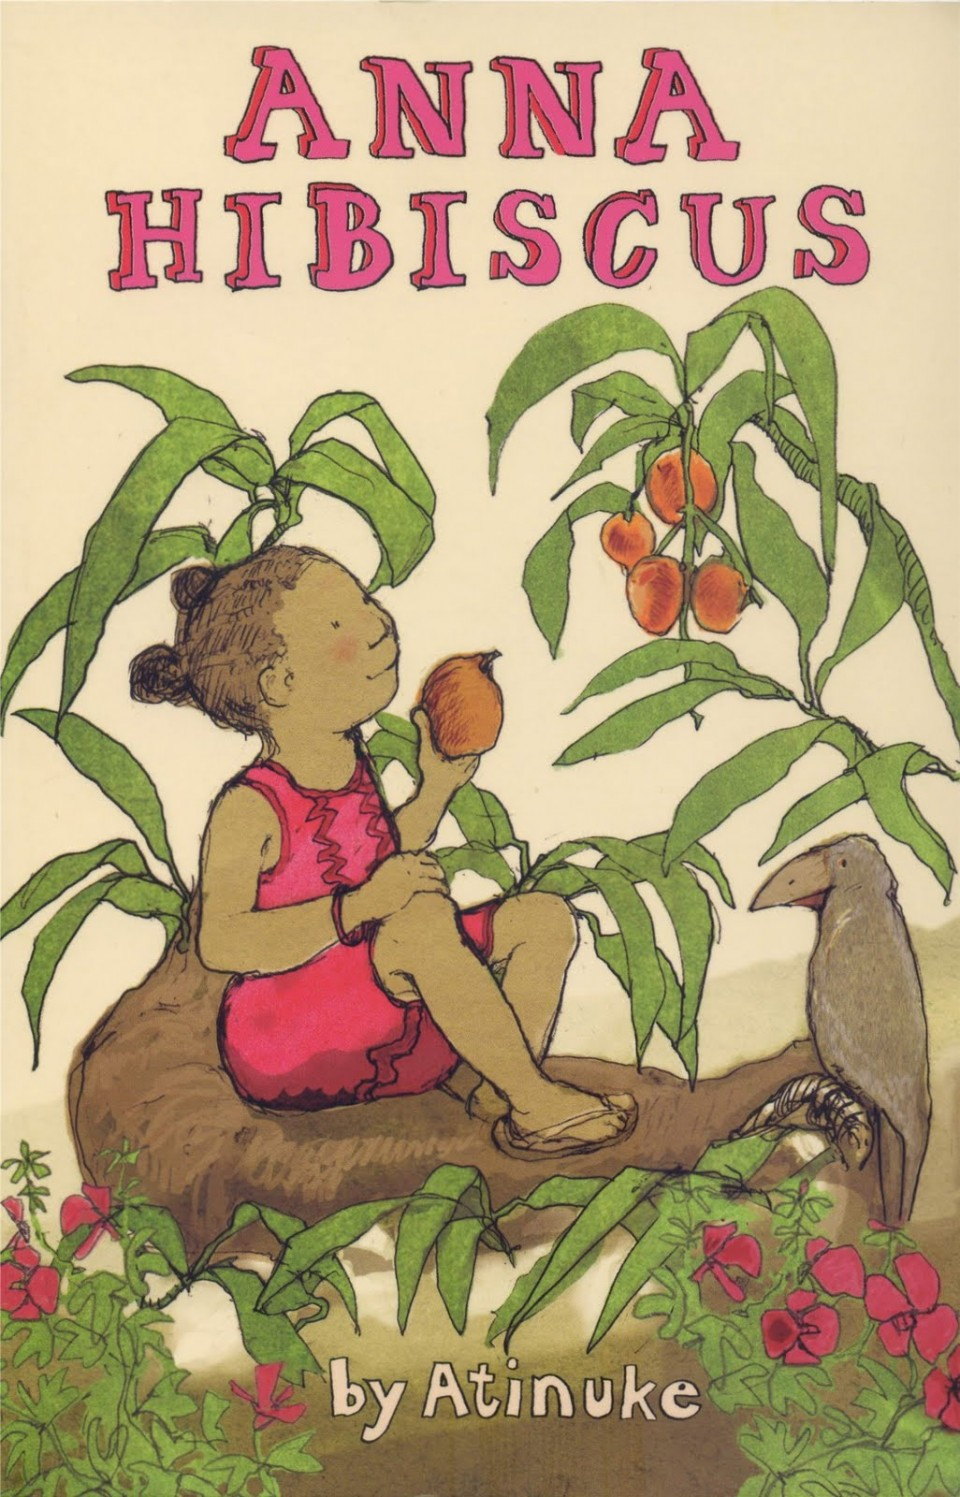 Anna Hibiscus is one of the best audiobooks for 5-year olds.